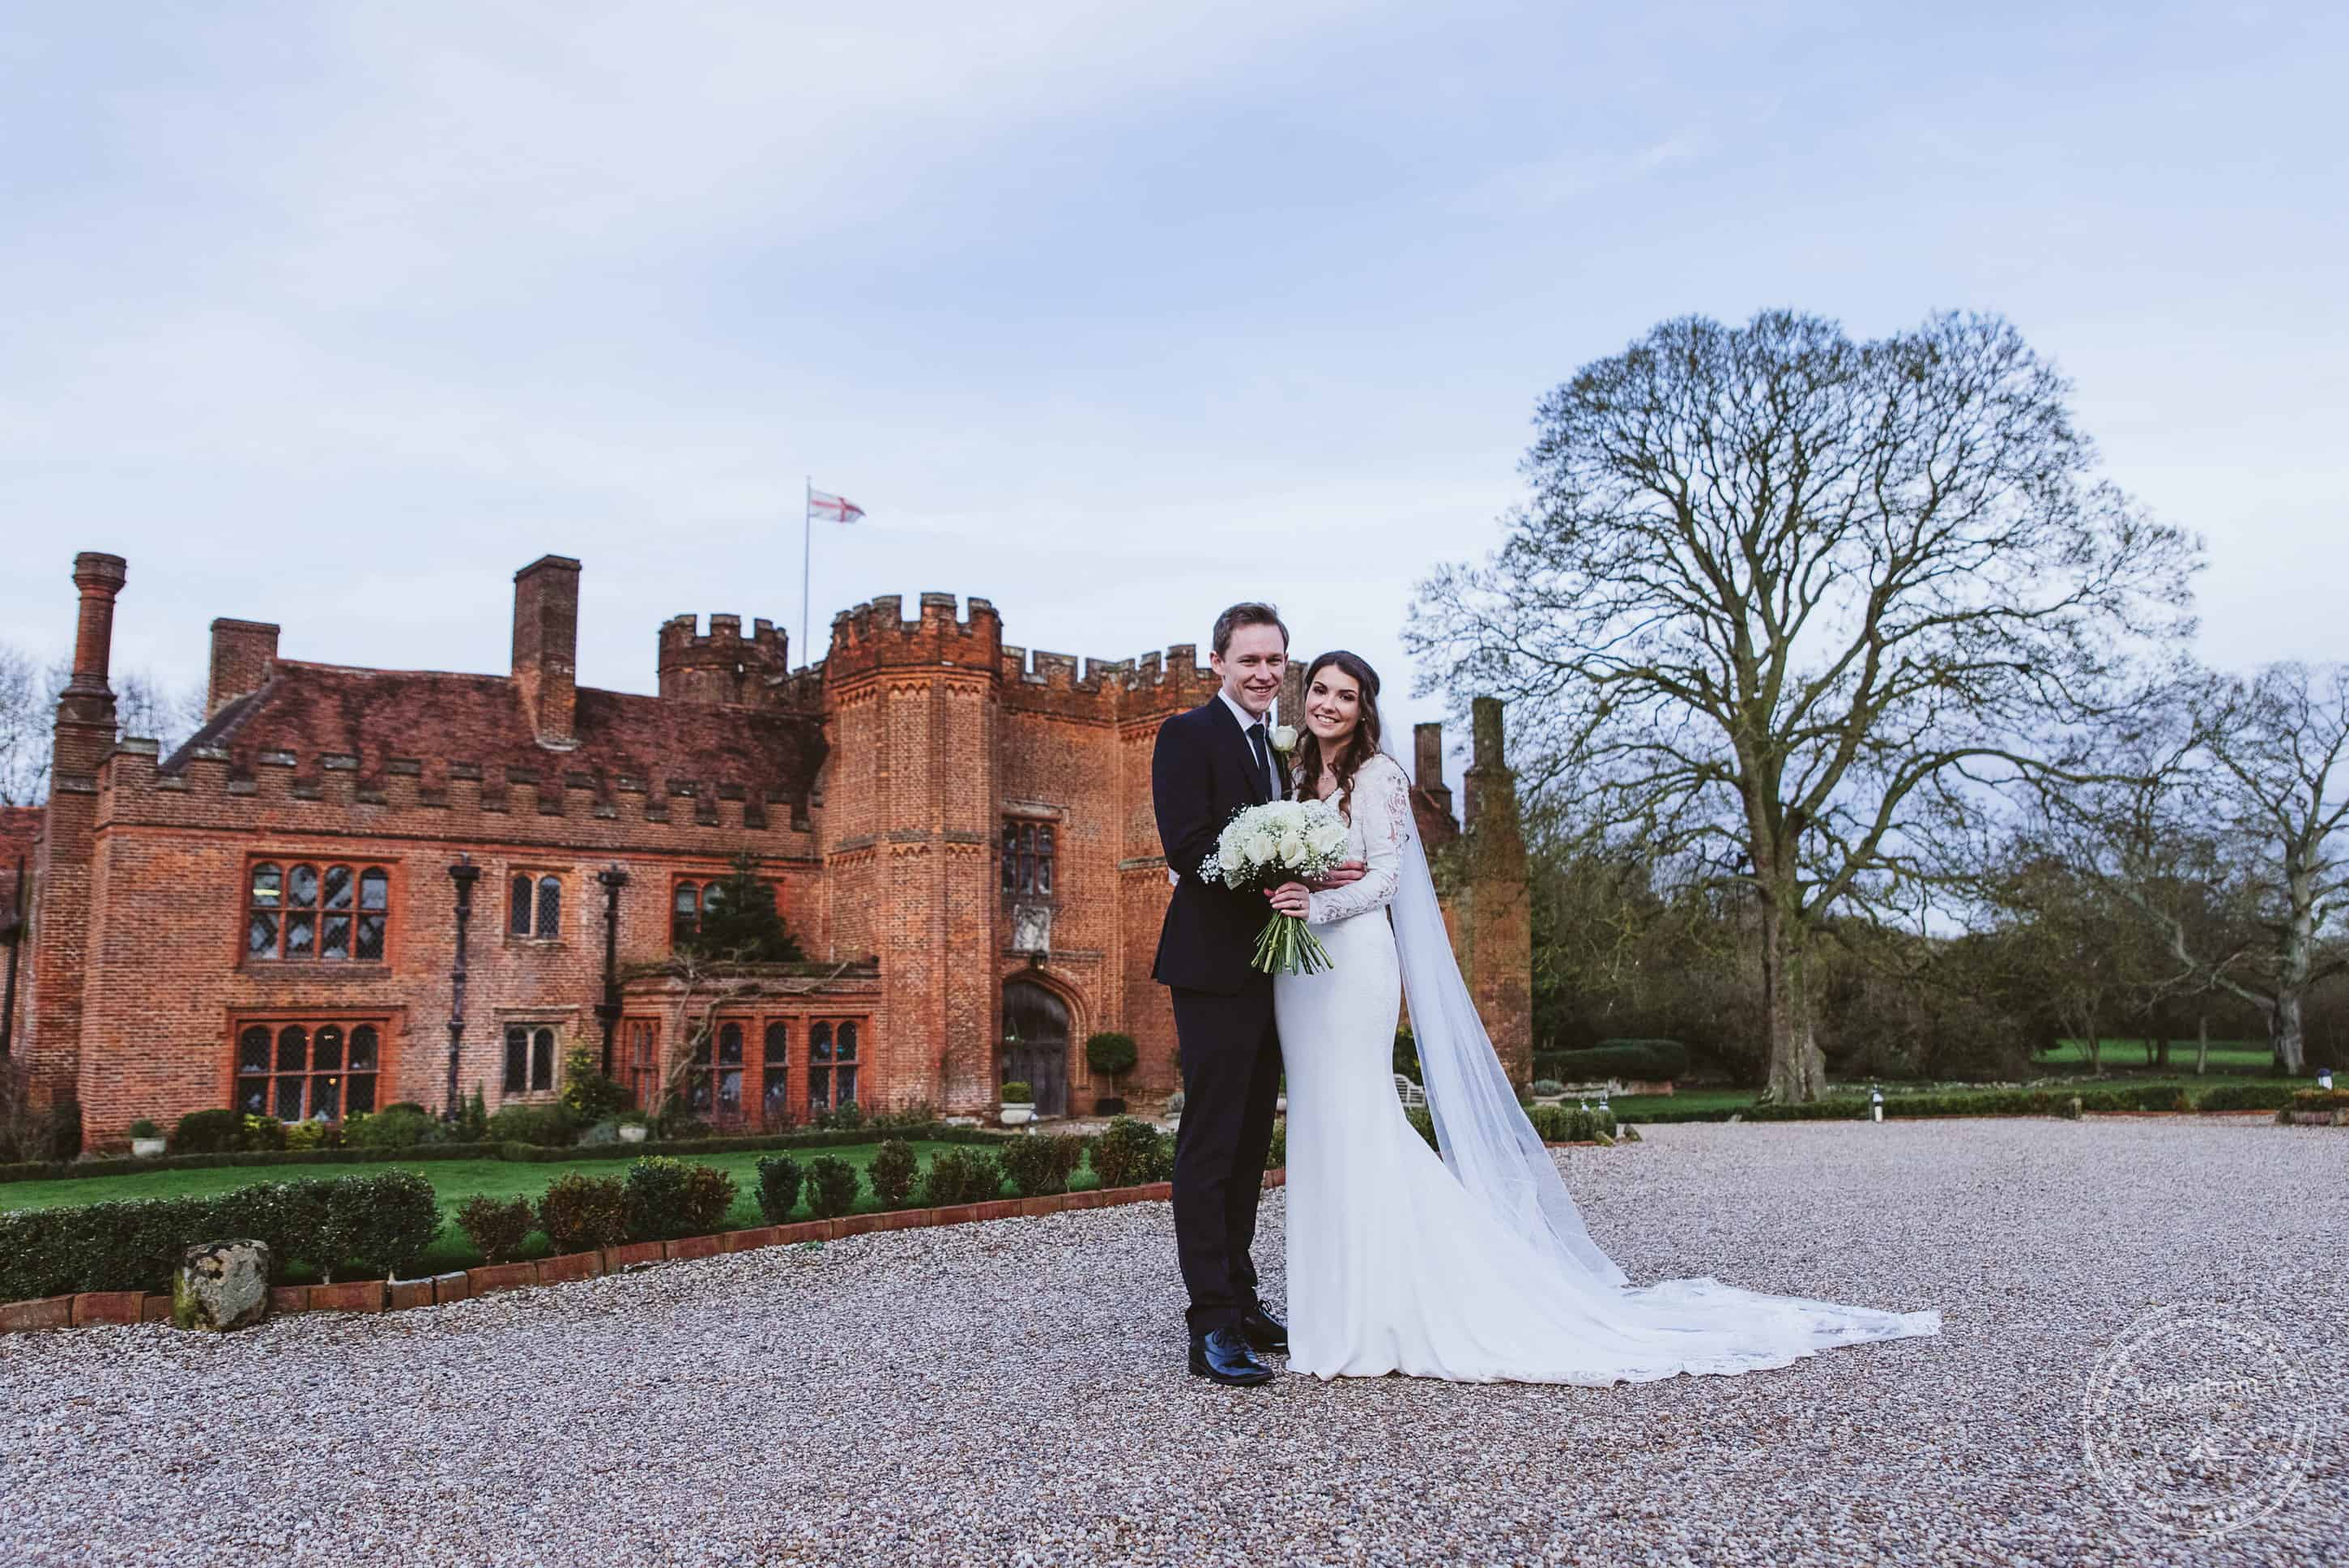 221219 Leez Priory Wedding Photoraphy 089